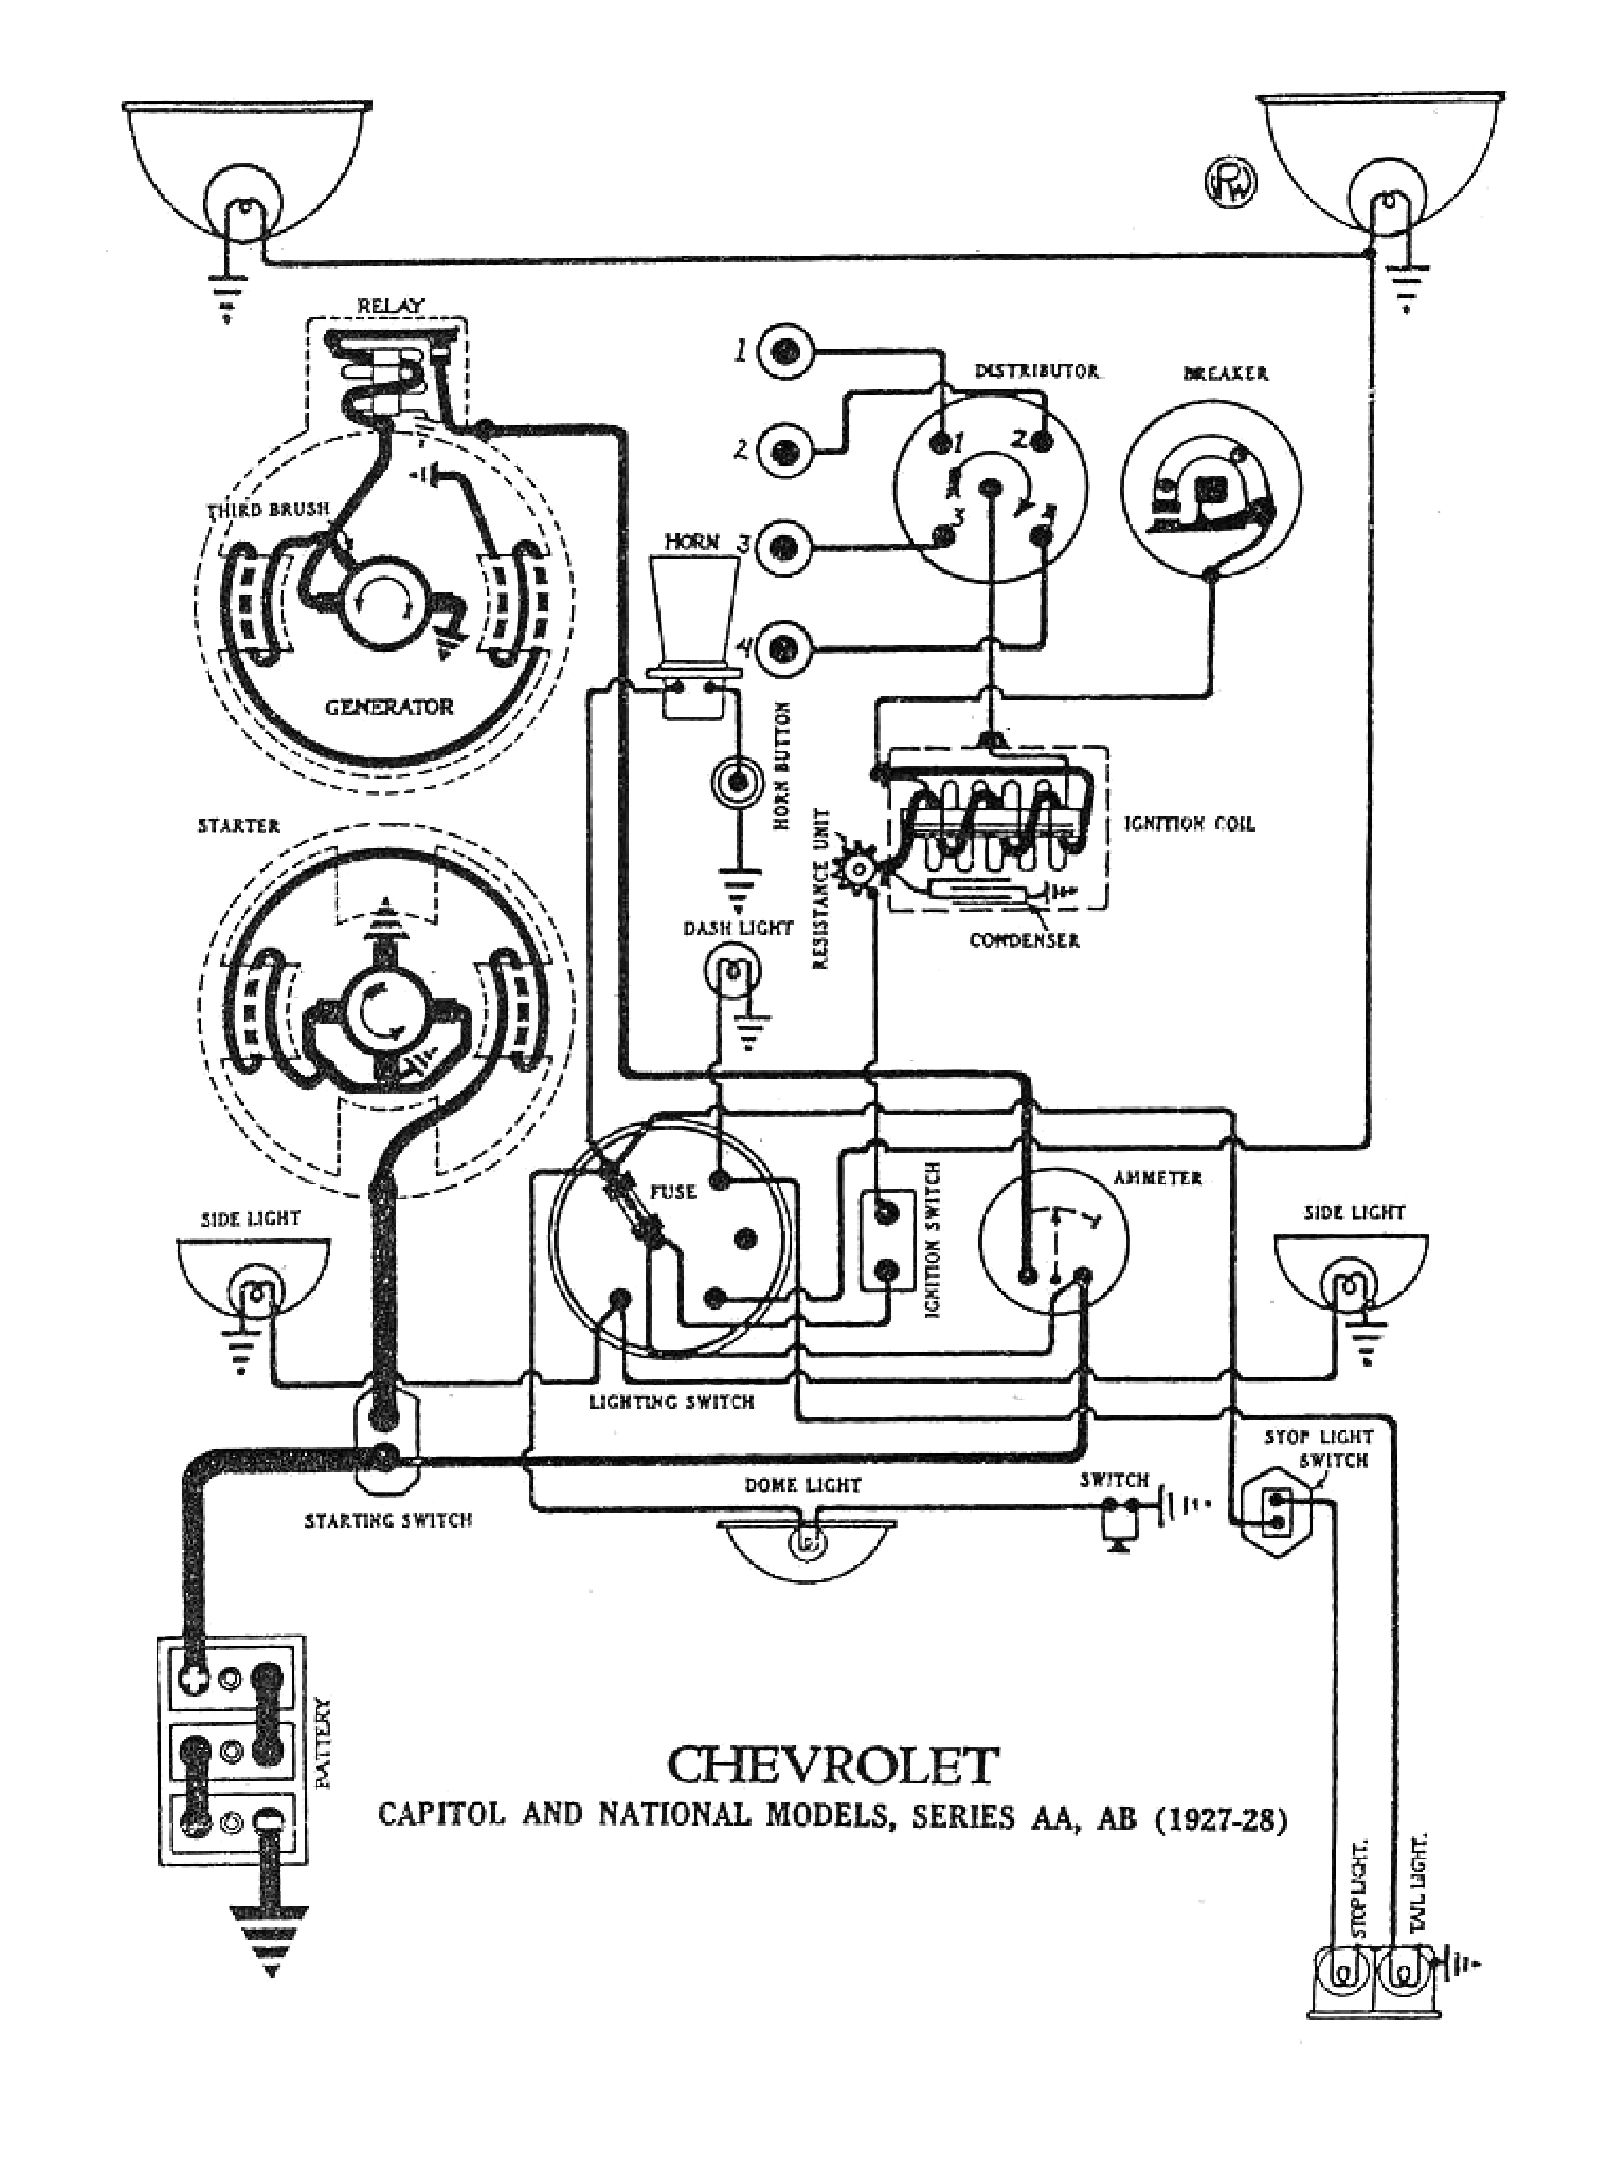 1946 Chevy Truck Wiring Diagram Archive Of Automotive 1950 Desoto Diagrams Rh Oldcarmanualproject Com